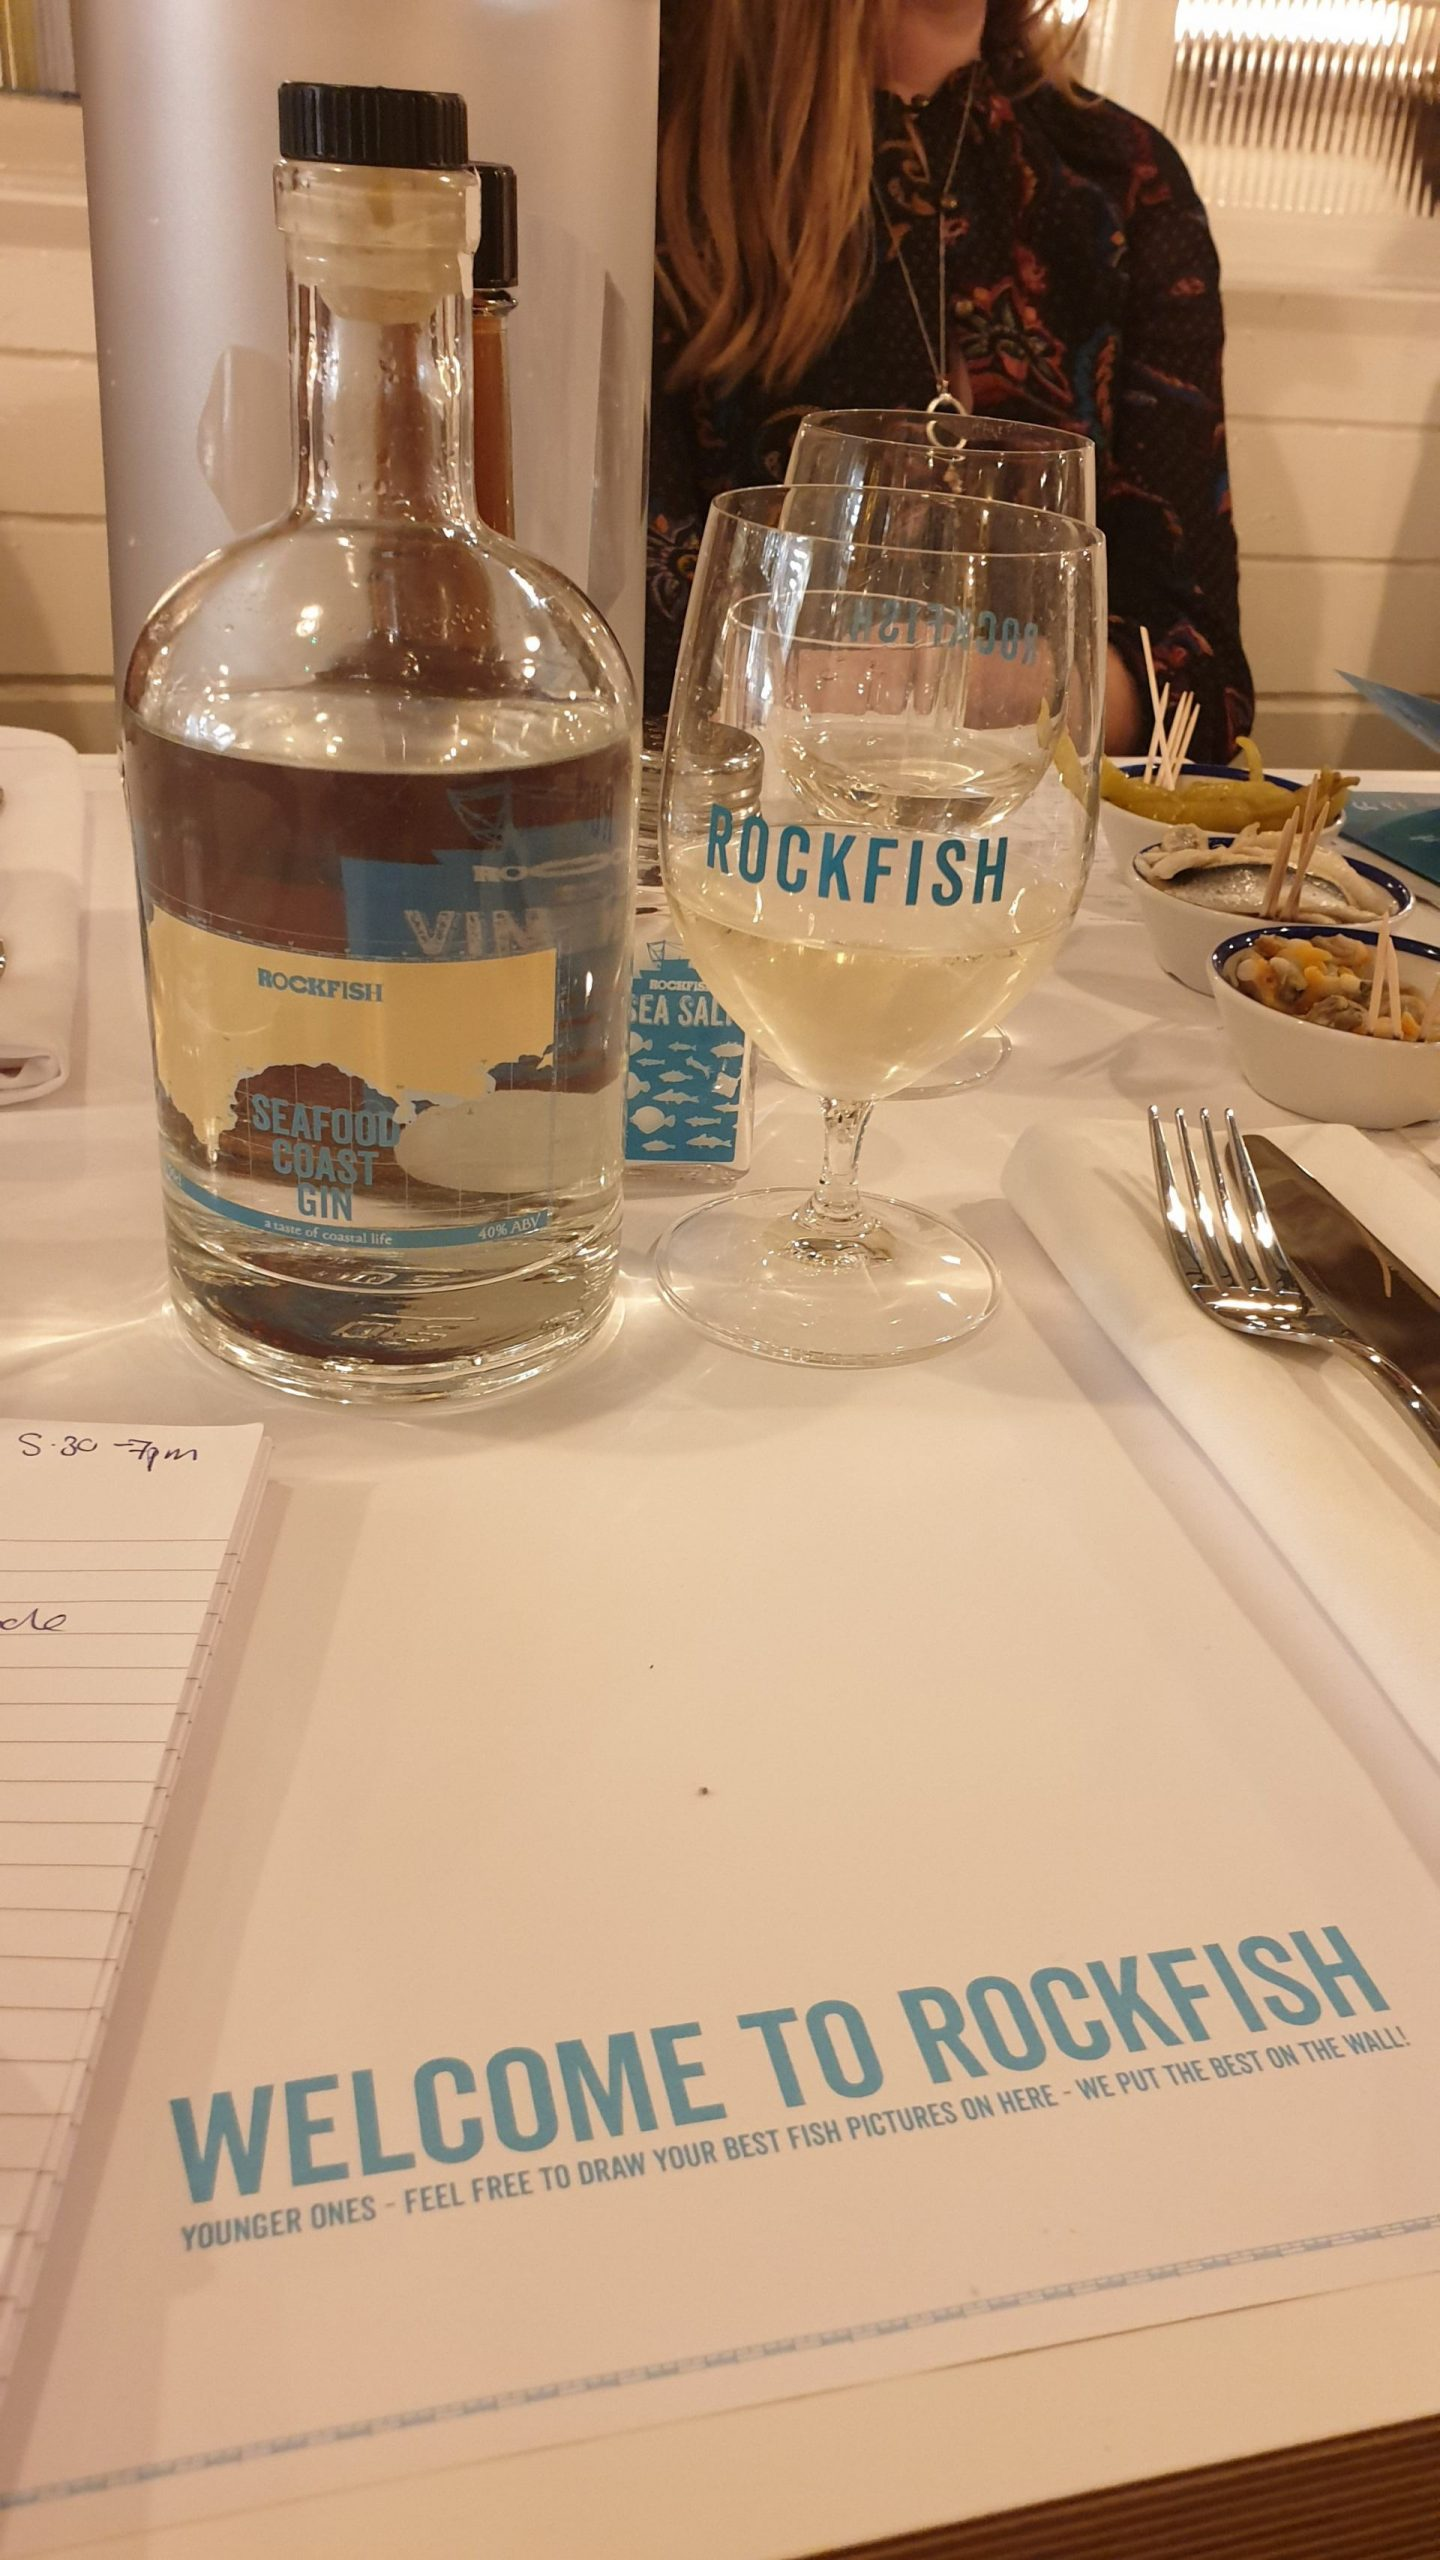 Did you know Rockfish make their own Gin?